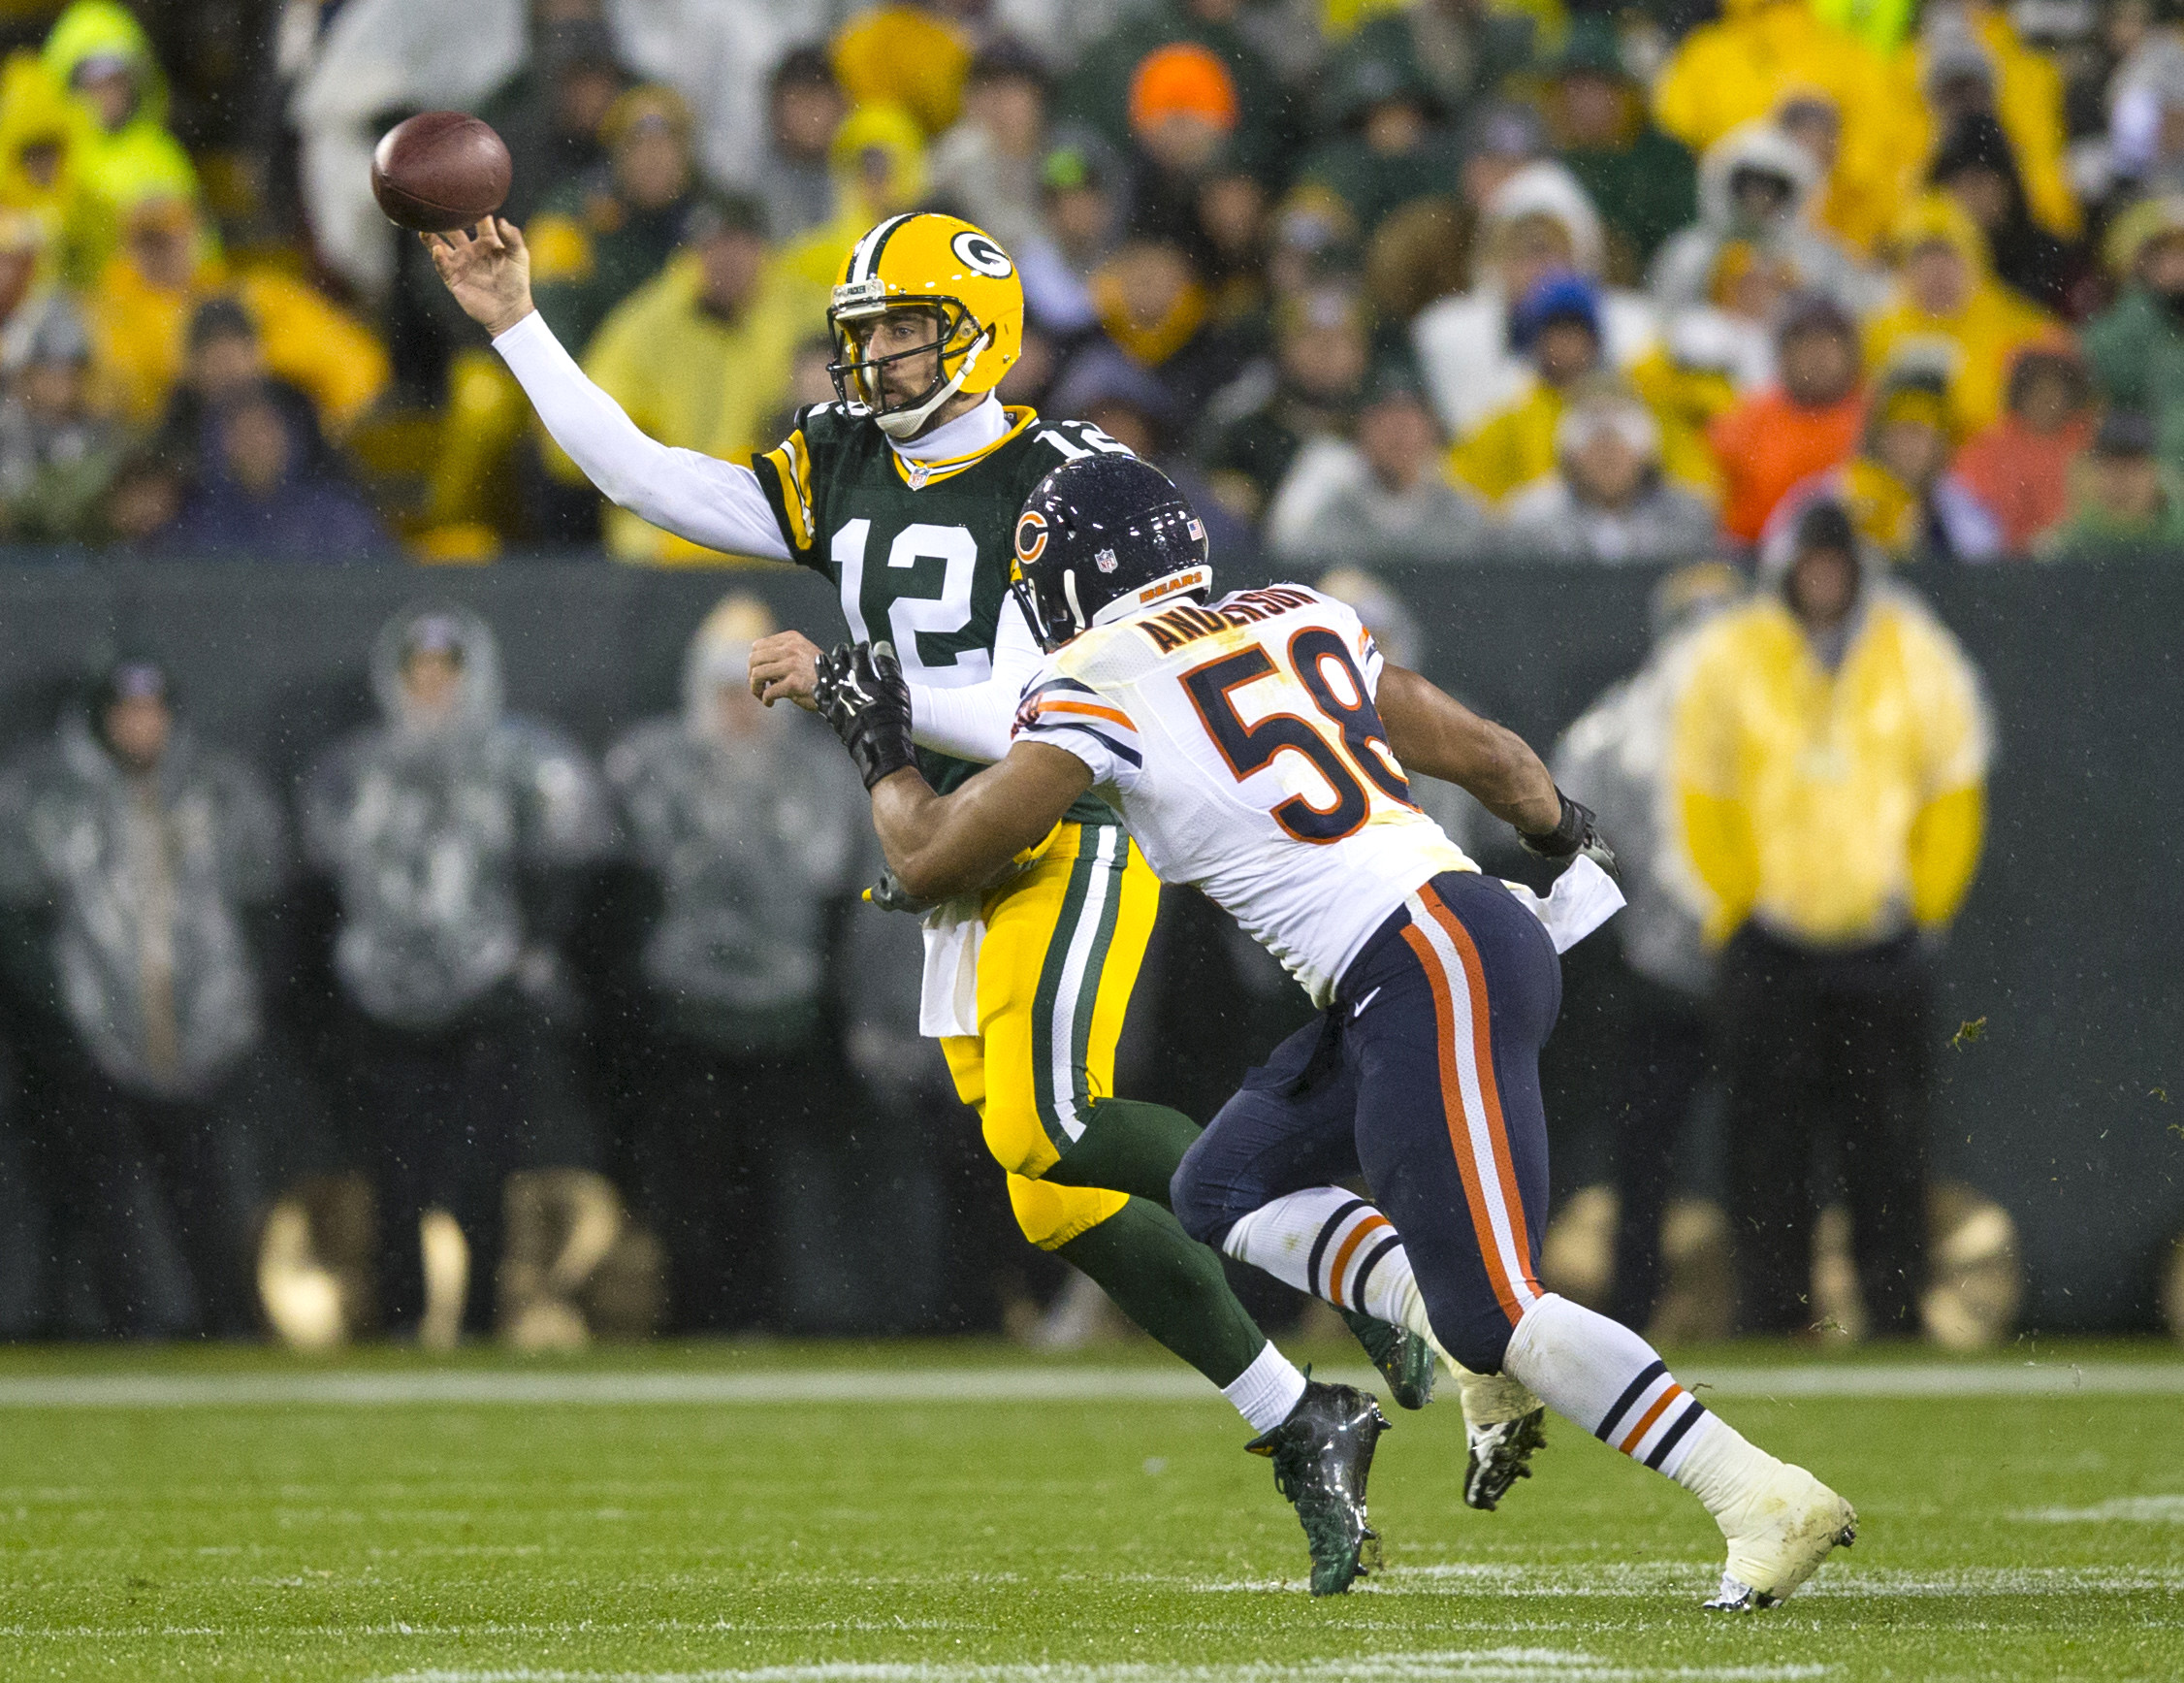 8953857-nfl-chicago-bears-at-green-bay-packers